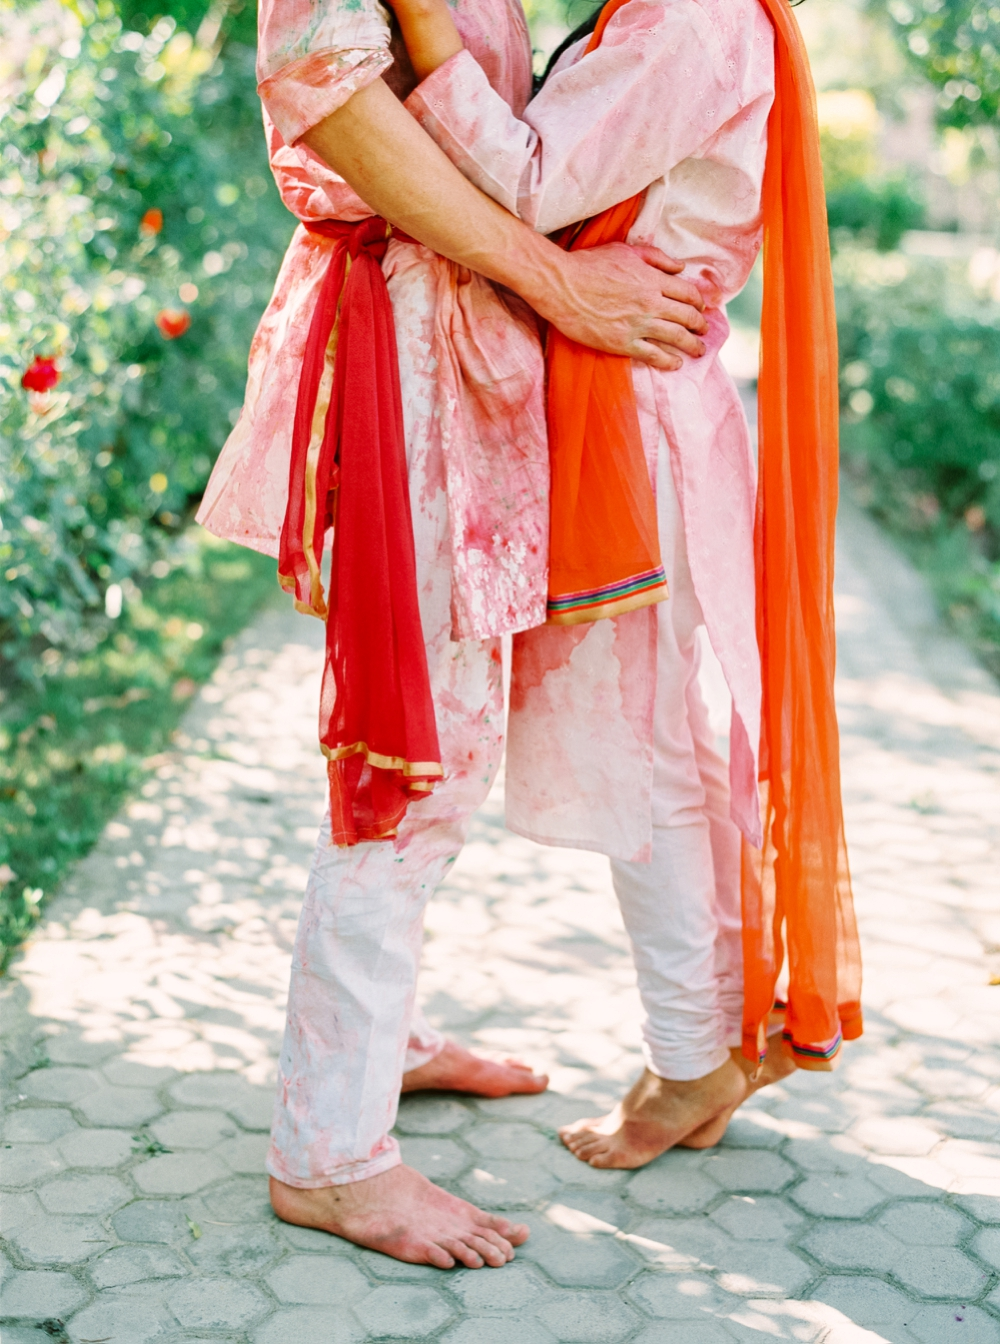 Indian wedding photographers | Calgary wedding photographer | india wedding | holi festival | color powder | delhi wedding